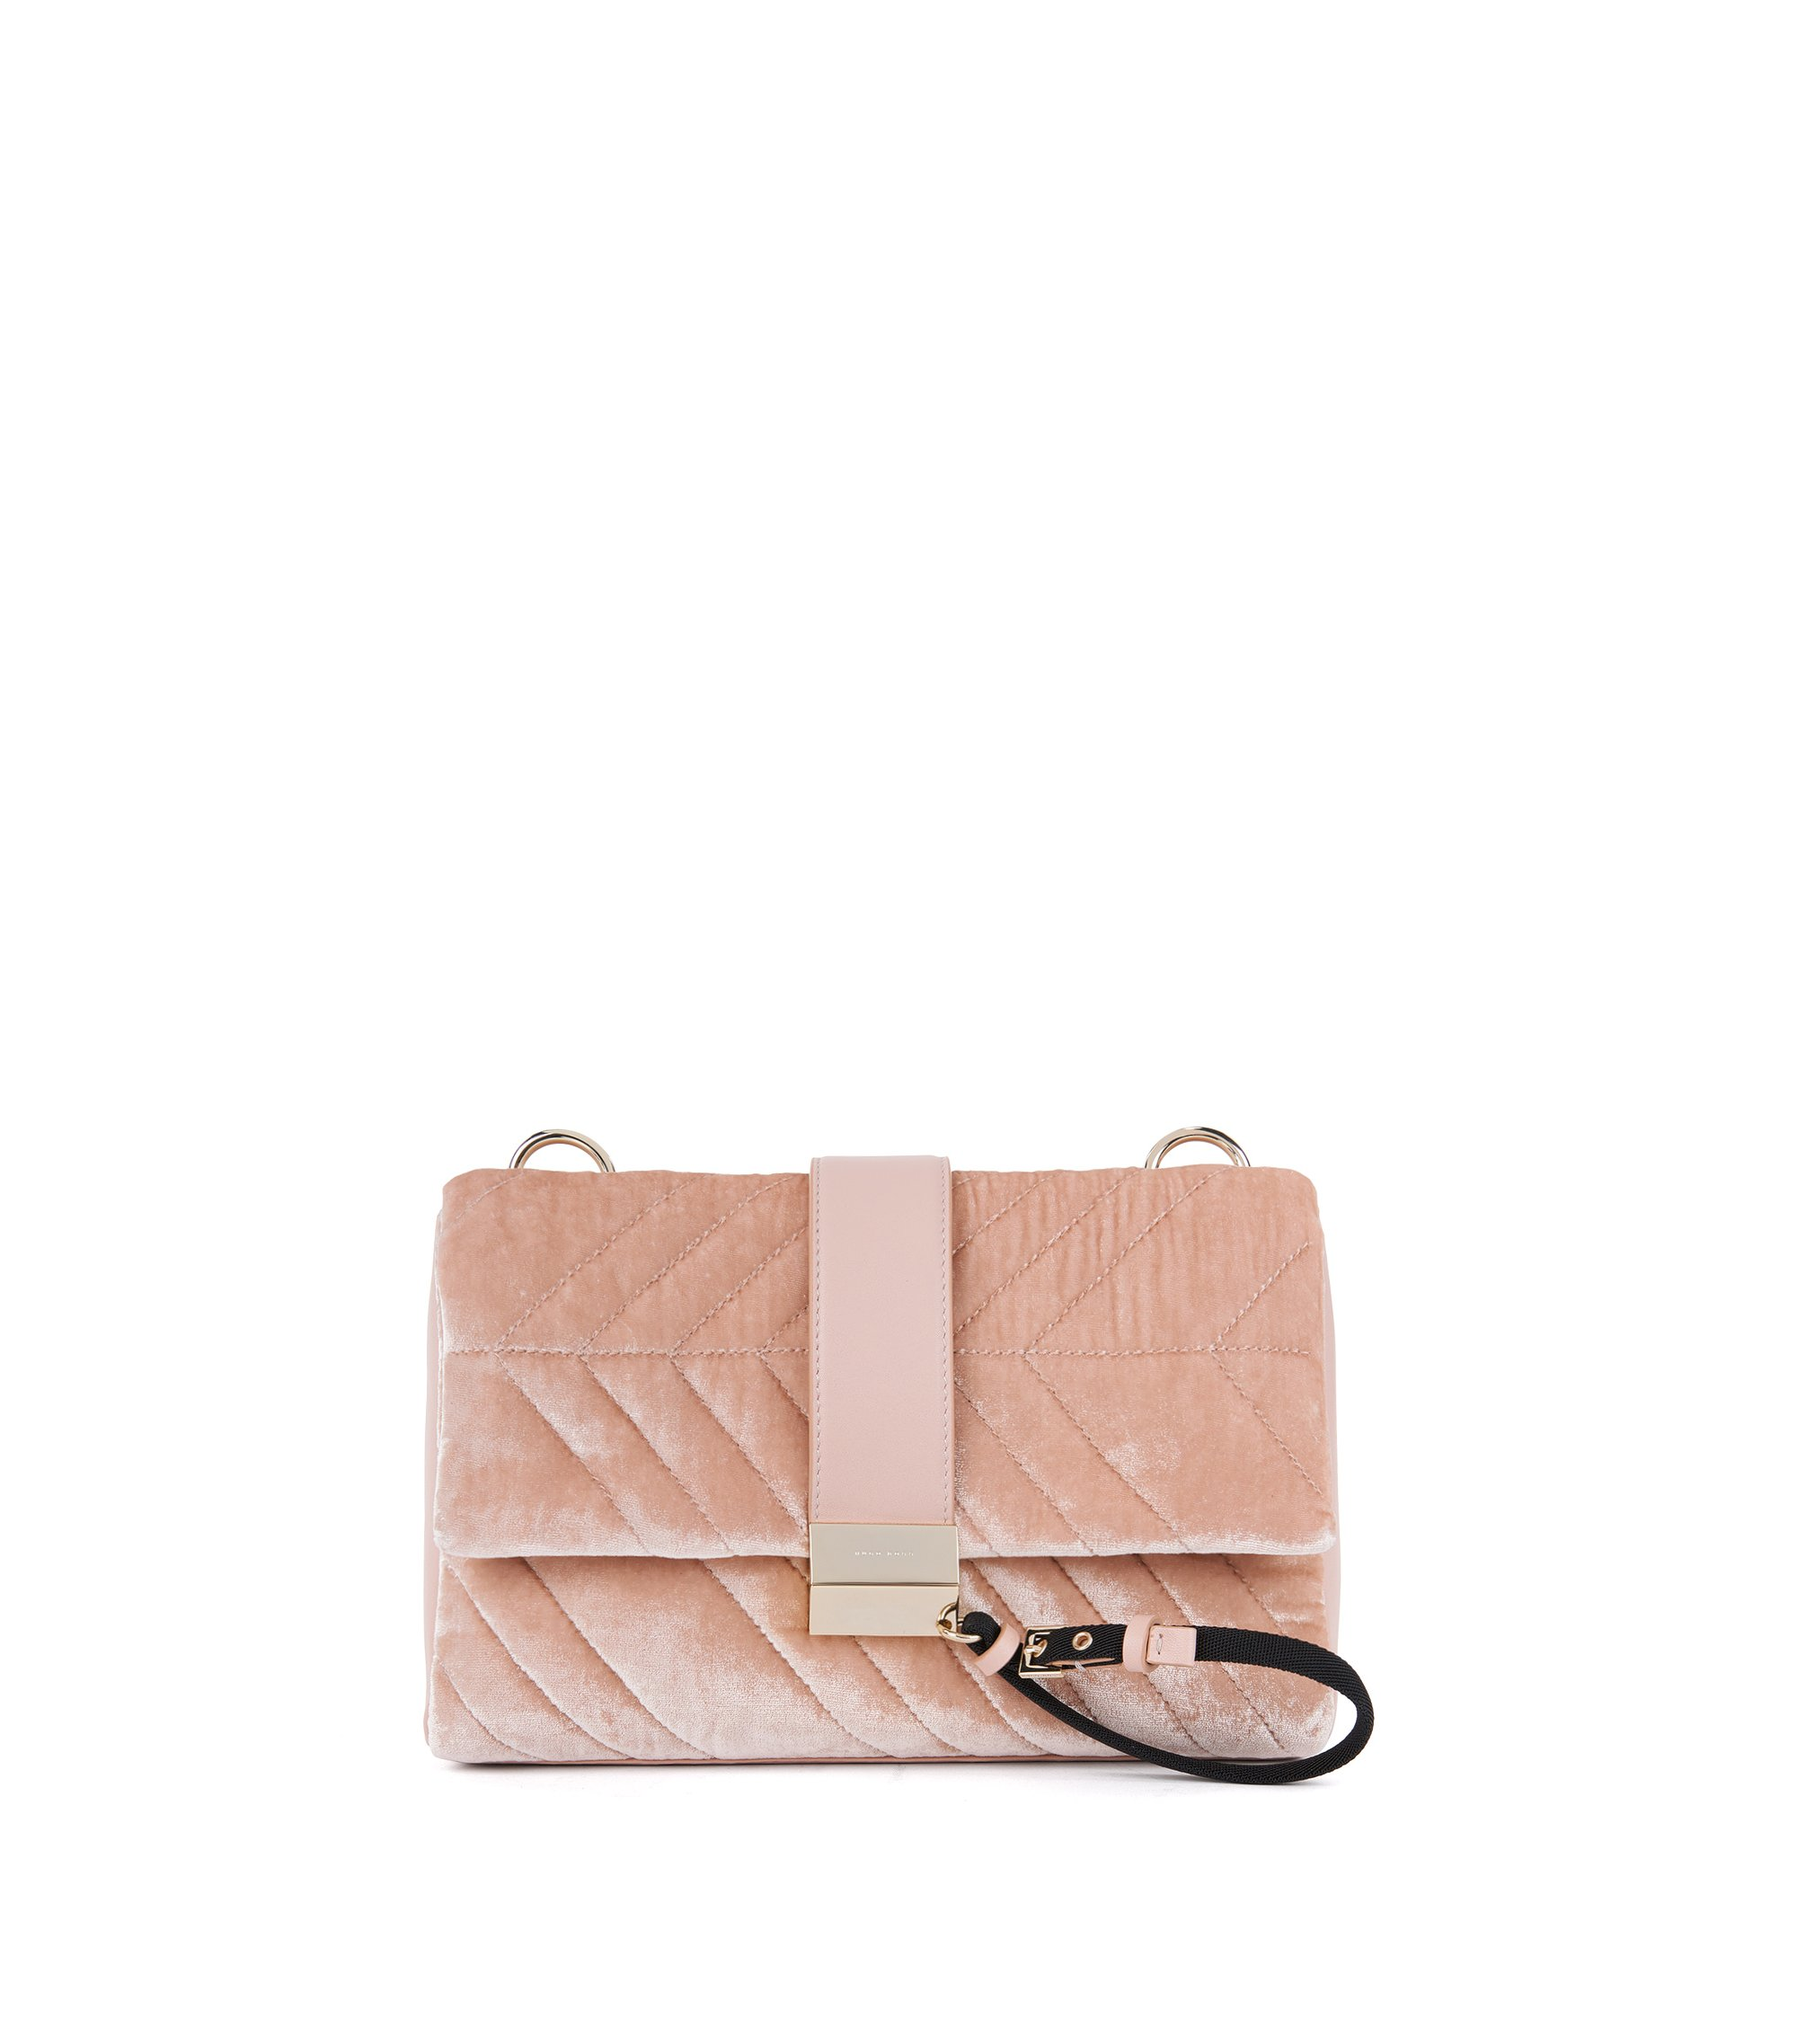 Shoulder bag in Italian velvet, light pink